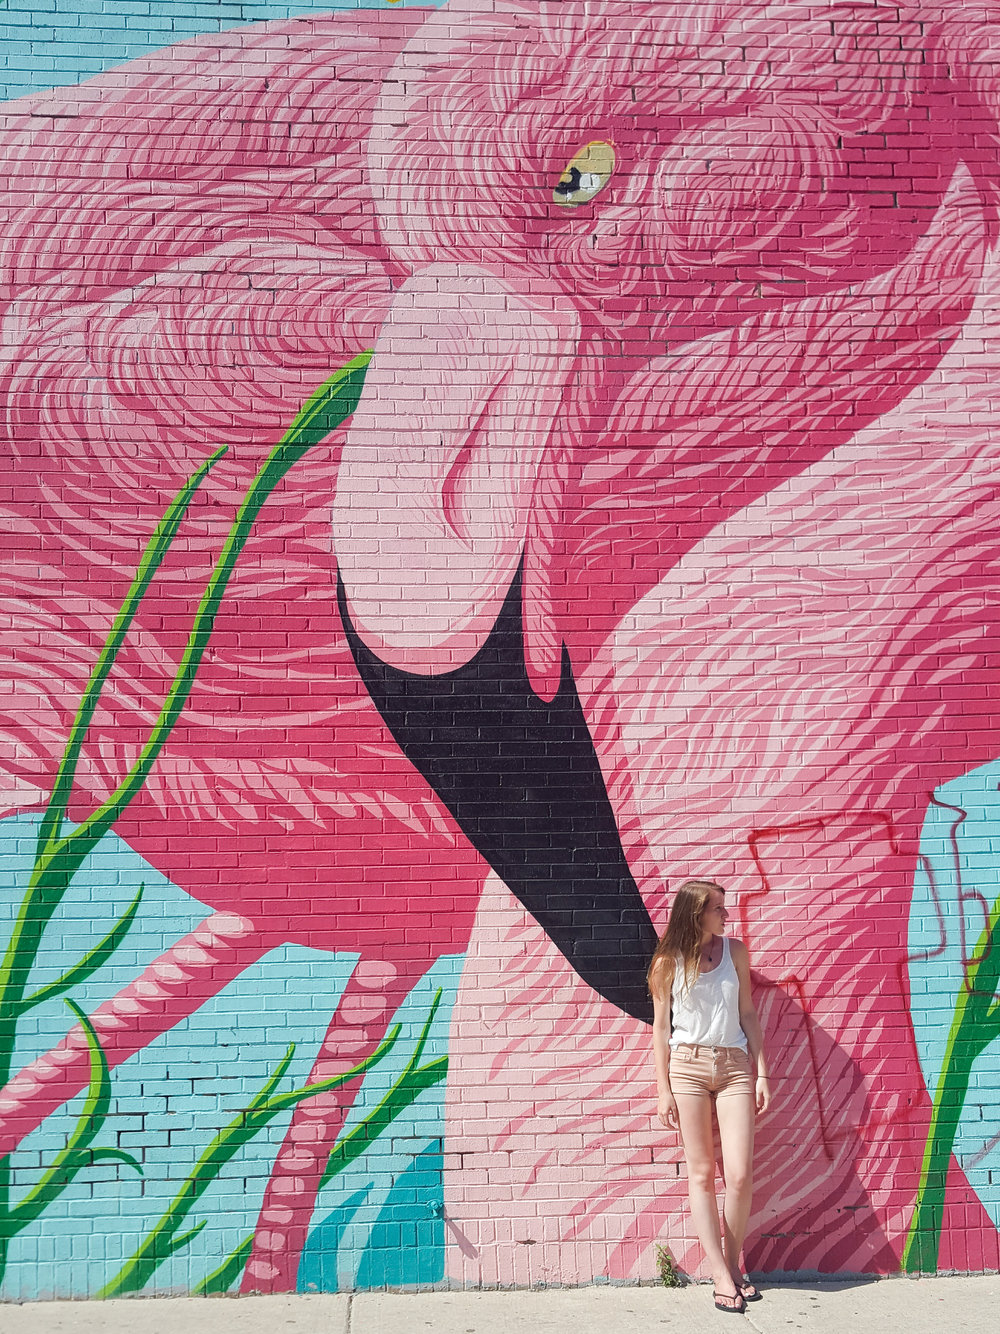 While I didn't try the rum, I thoroughly enjoyed the flamingo wall at the Flamingo Rum Club